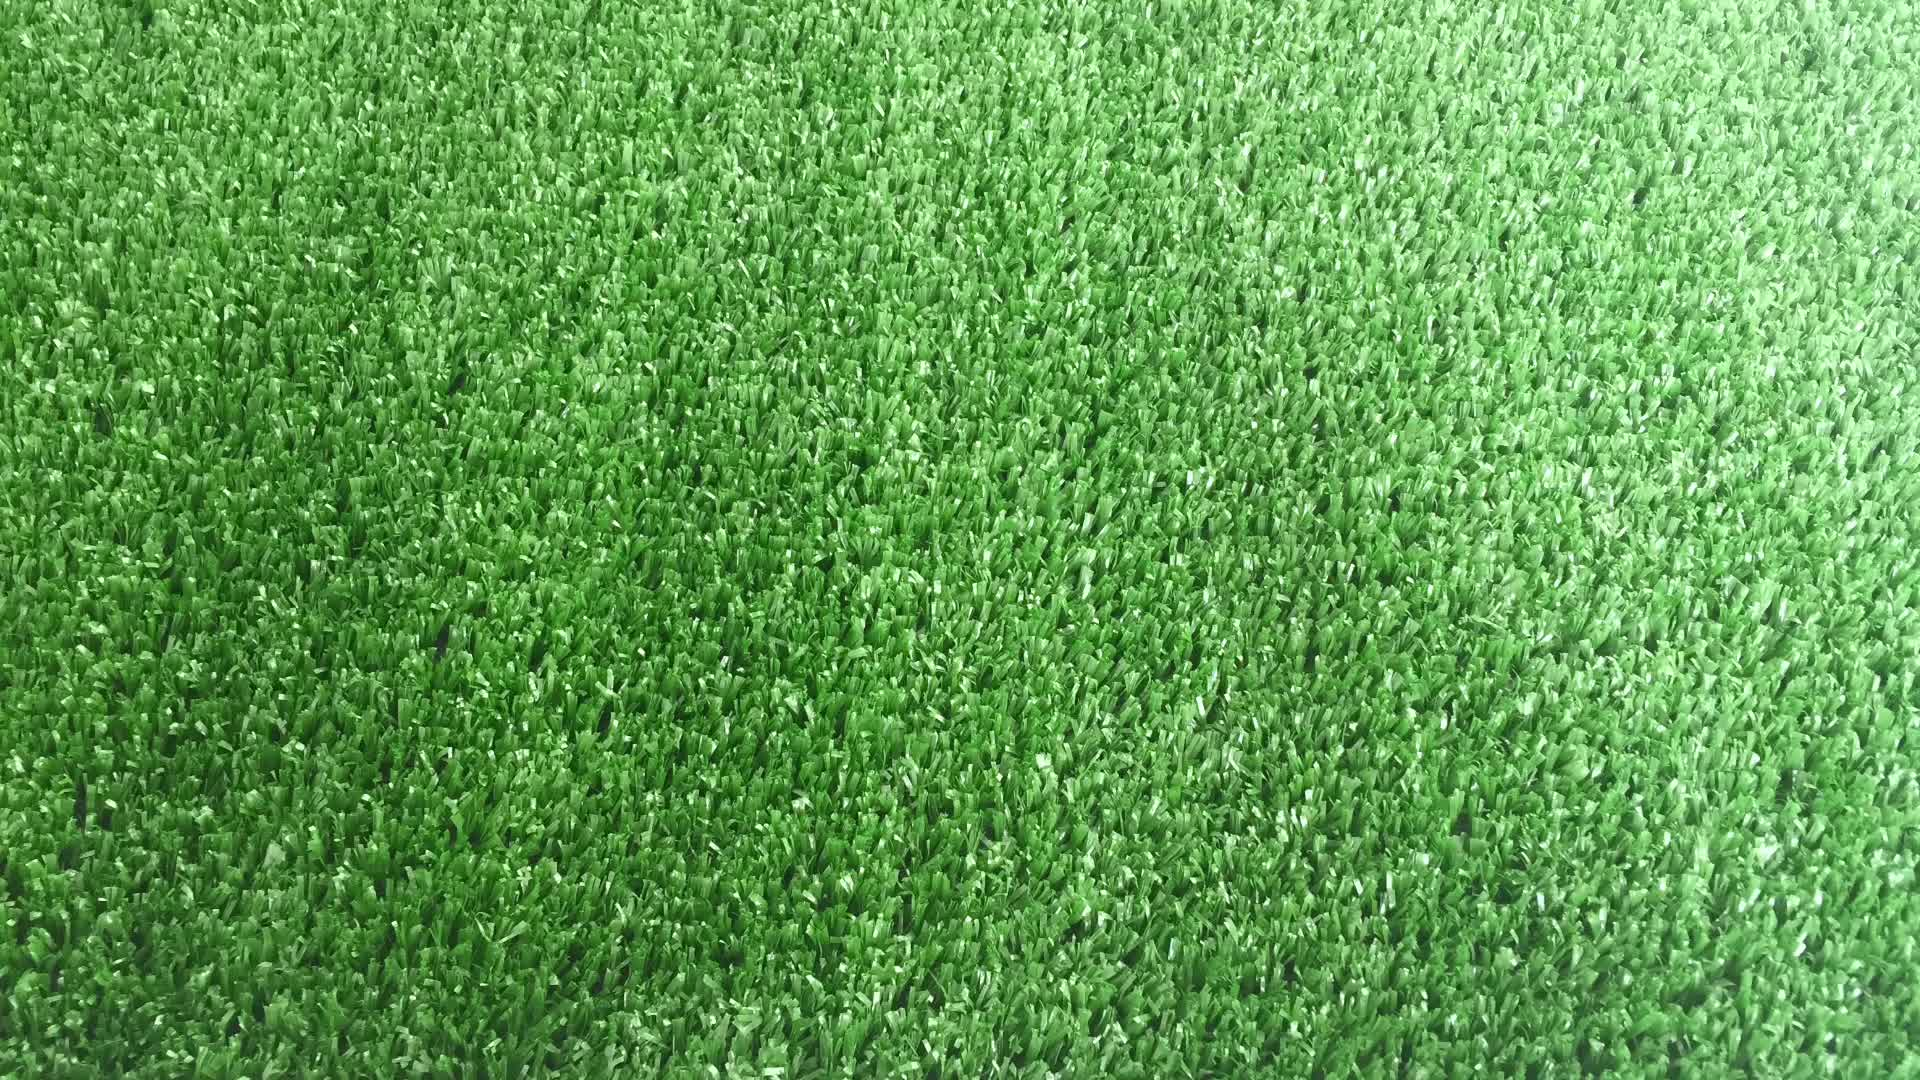 Synthetic Grass Tile  Synthetic Grass Used Lawn